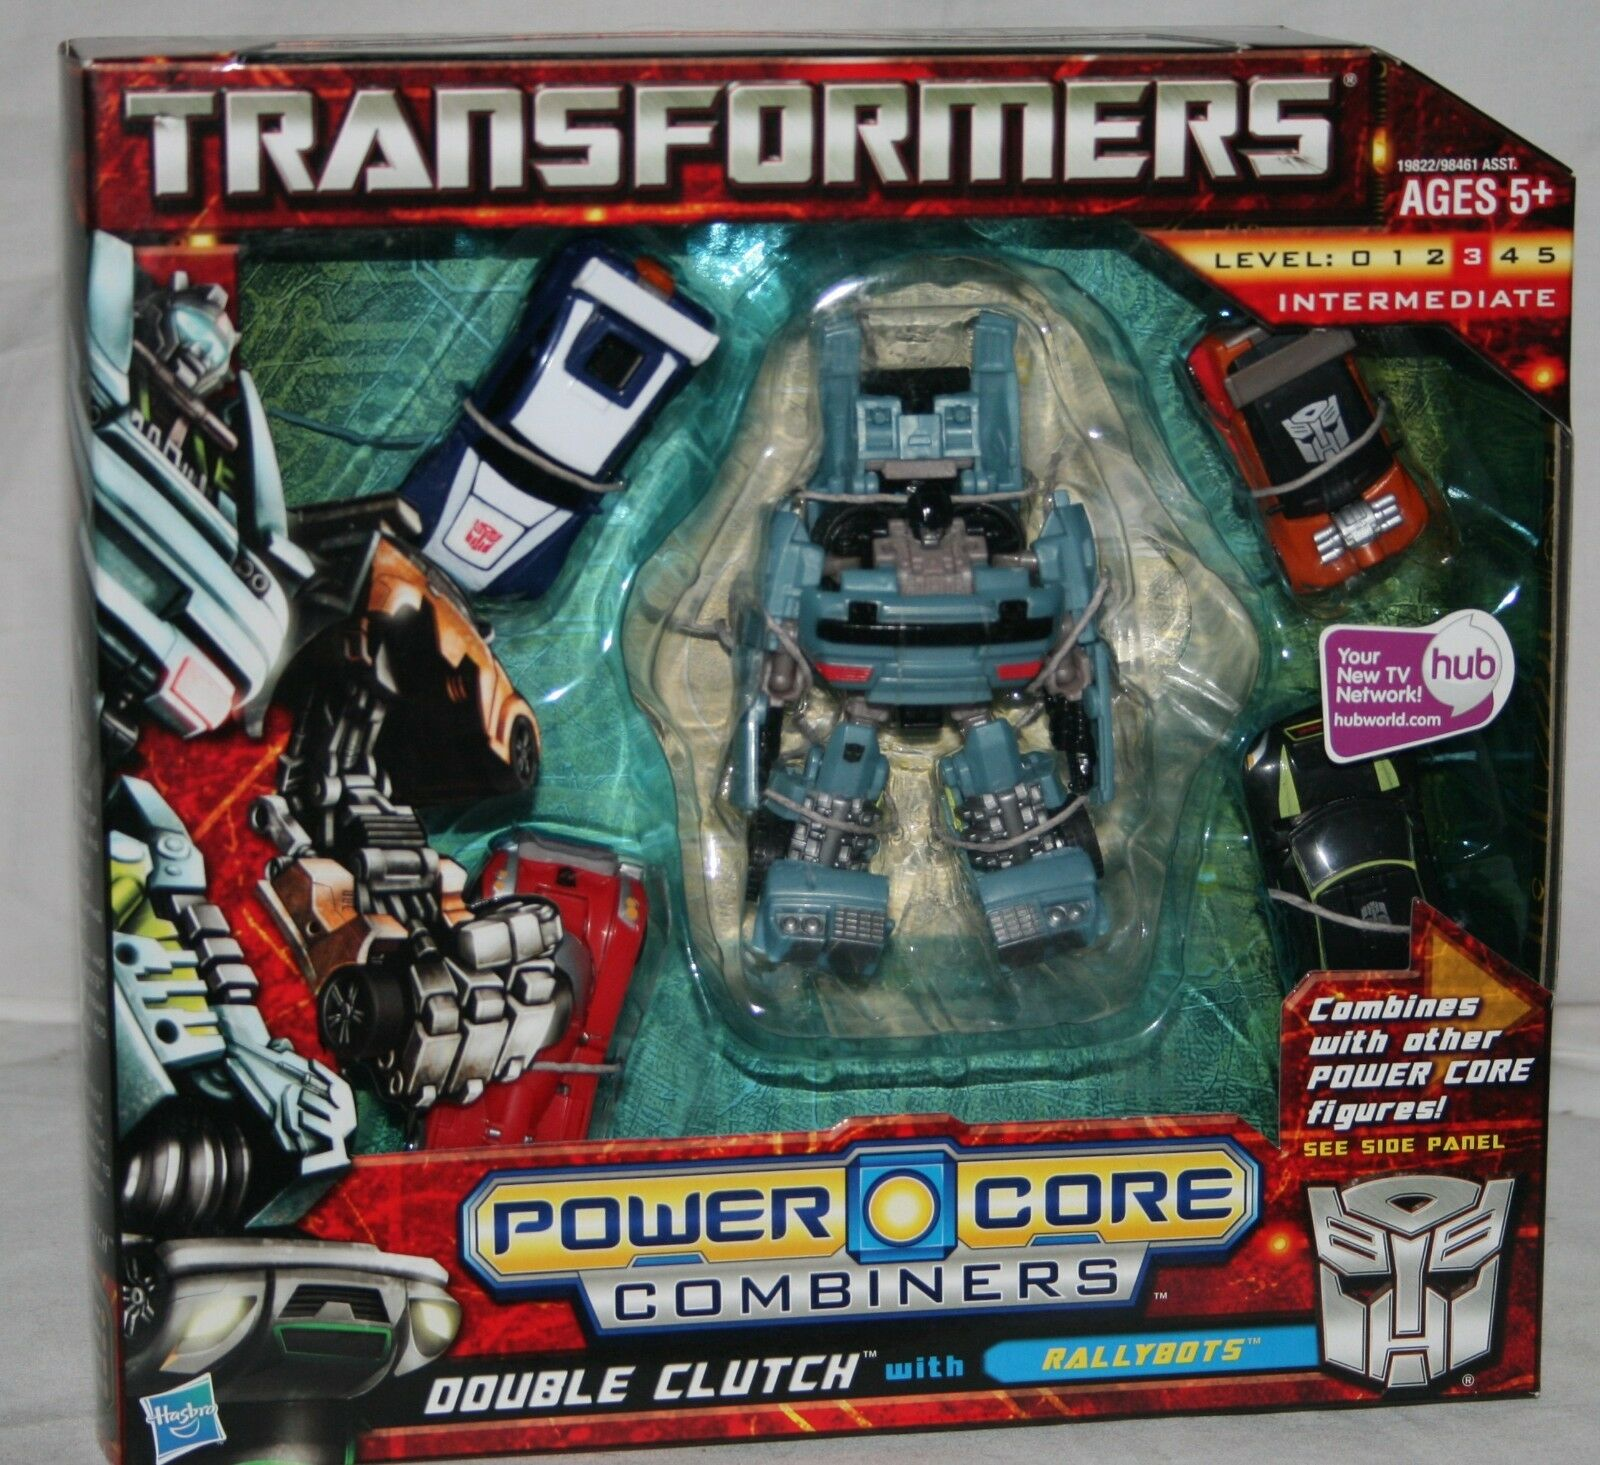 Transformers powercore combimers double double double clutch with rallybots misb e59e51